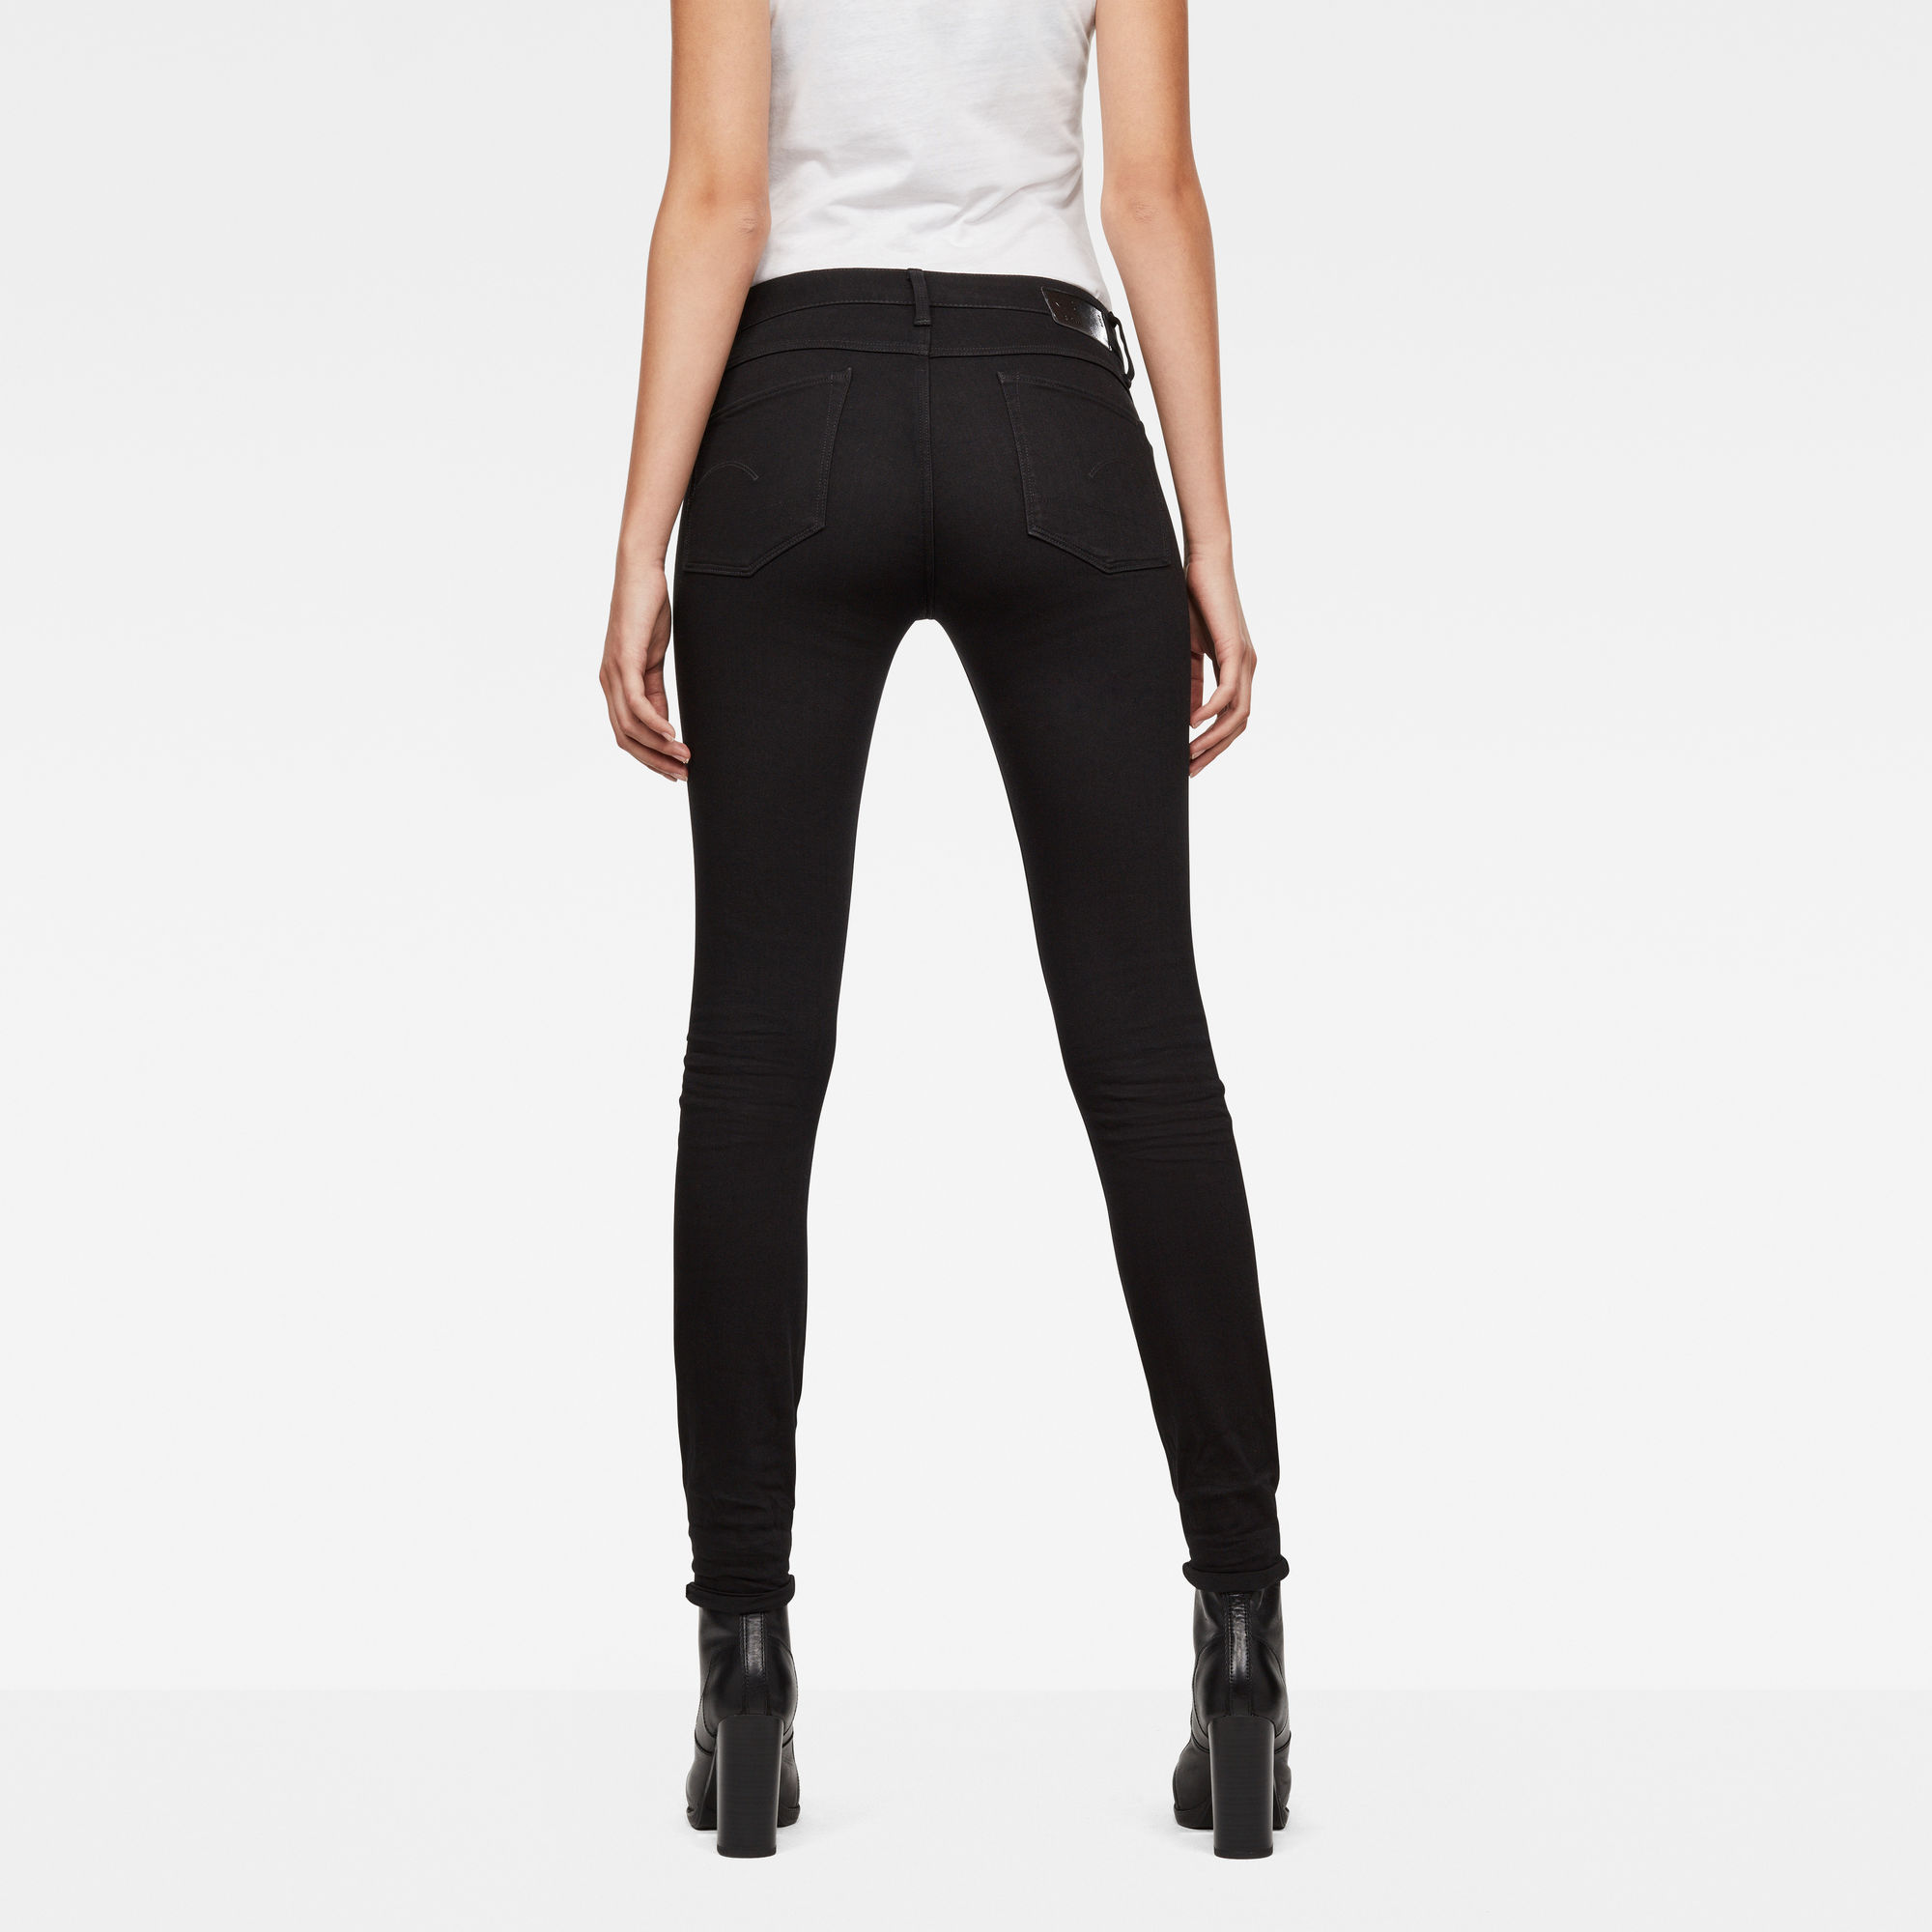 G-Star RAW 3301 Deconstructed Mid-Waist Skinny Jeans